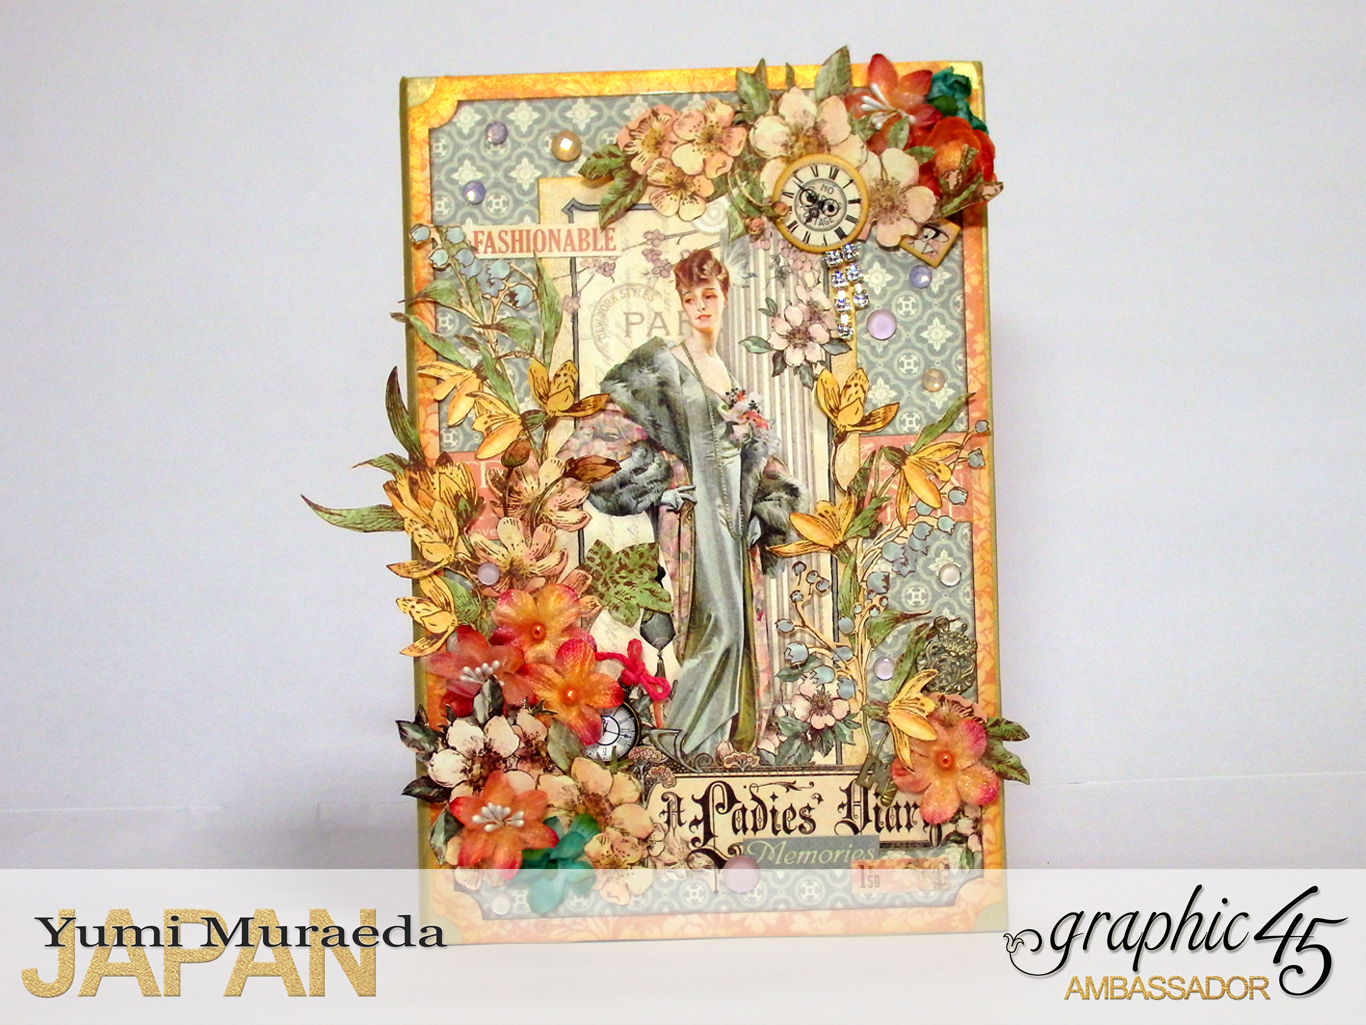 1My Lady Accesoory Case, A Ladies Diary, by Yumi Muraeda, Product by Graphic 45jpg